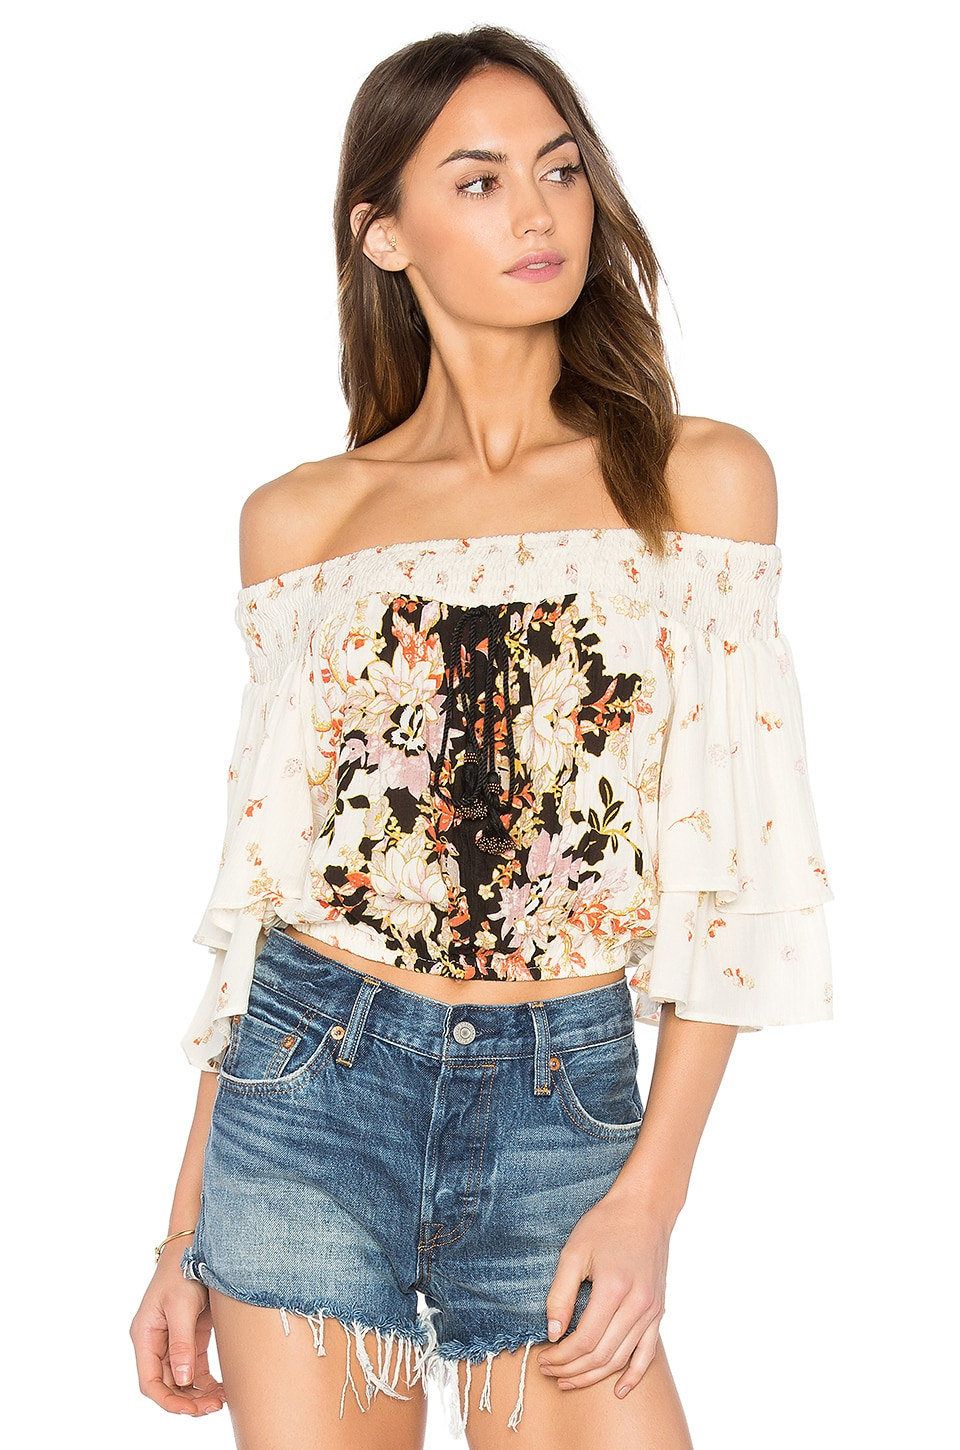 Poinsettia Floral Blouse by Band Of Gypsies